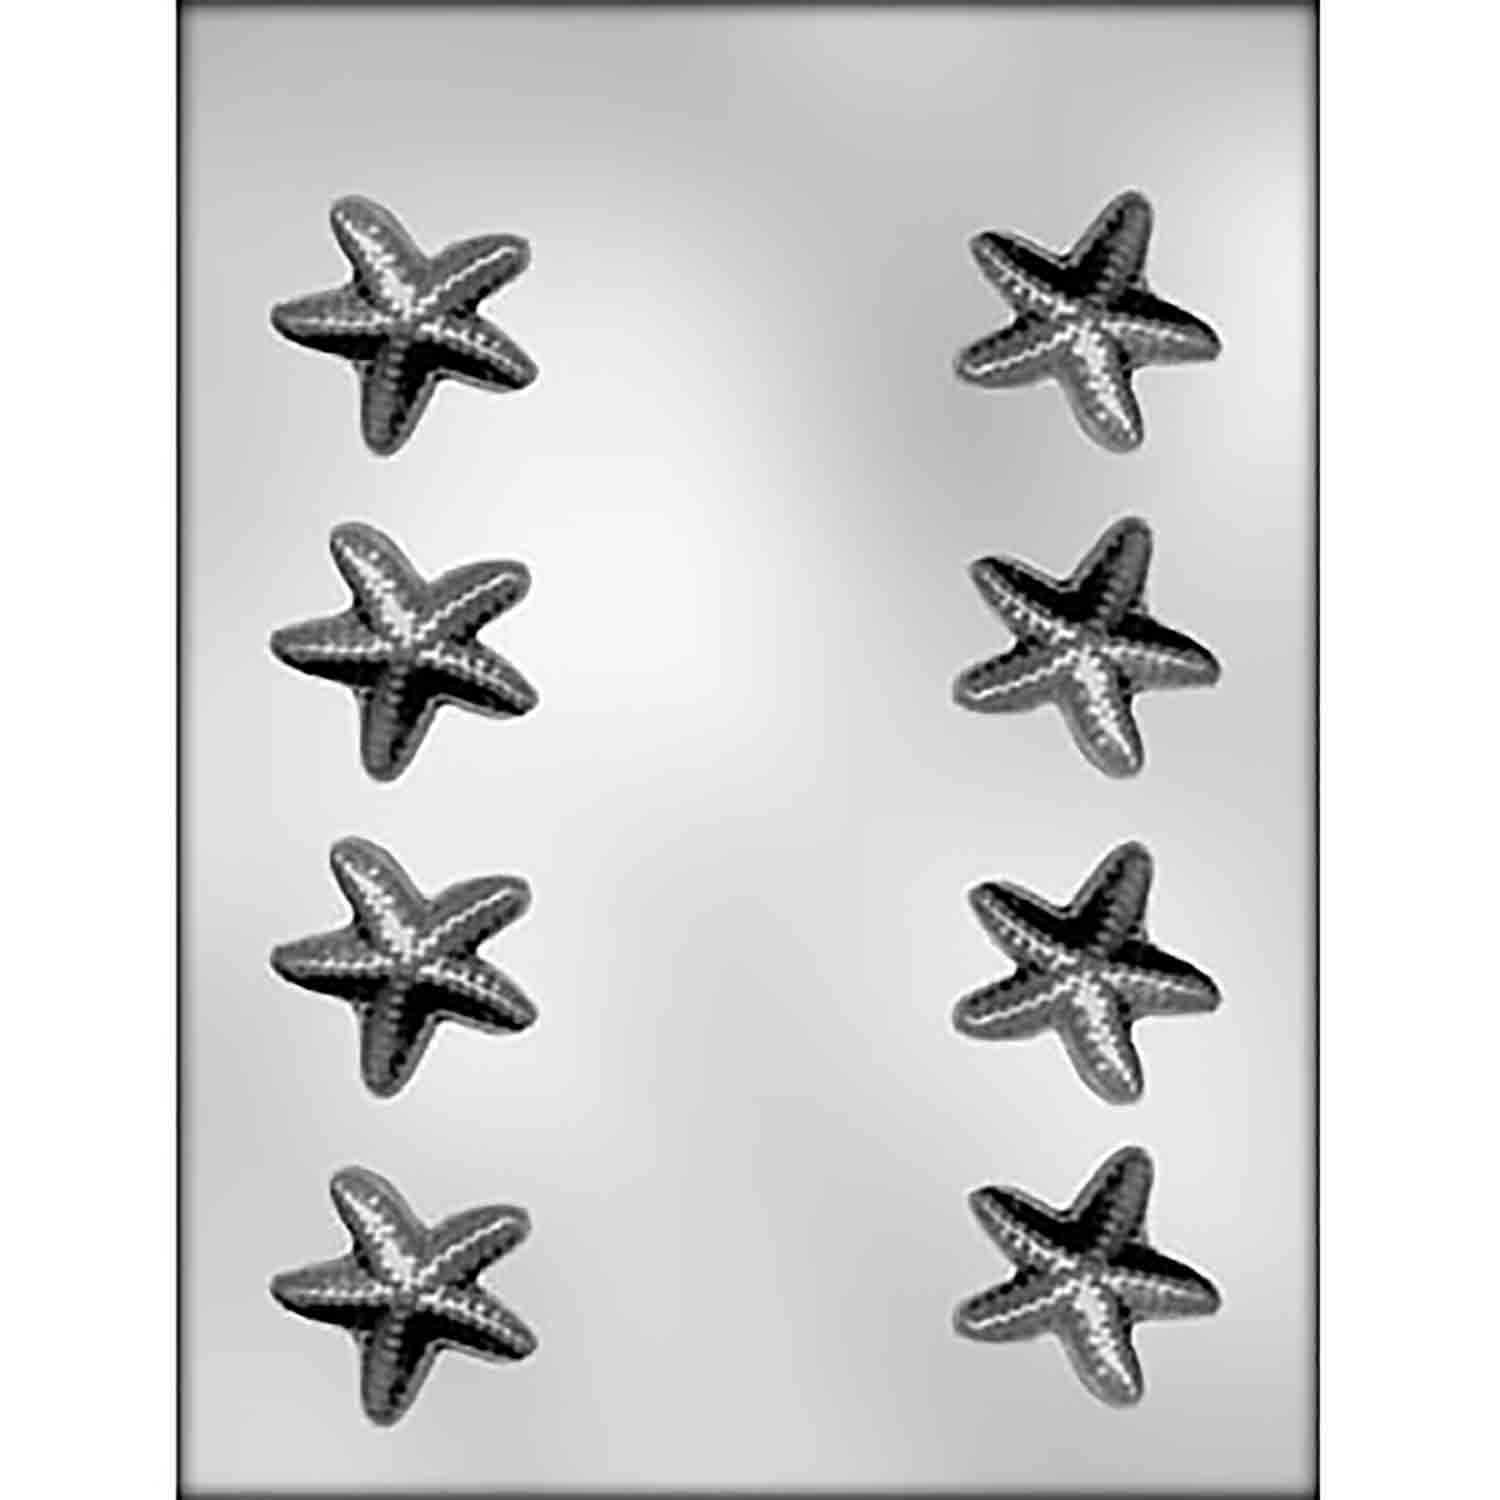 3D Starfish Chocolate Candy Mold